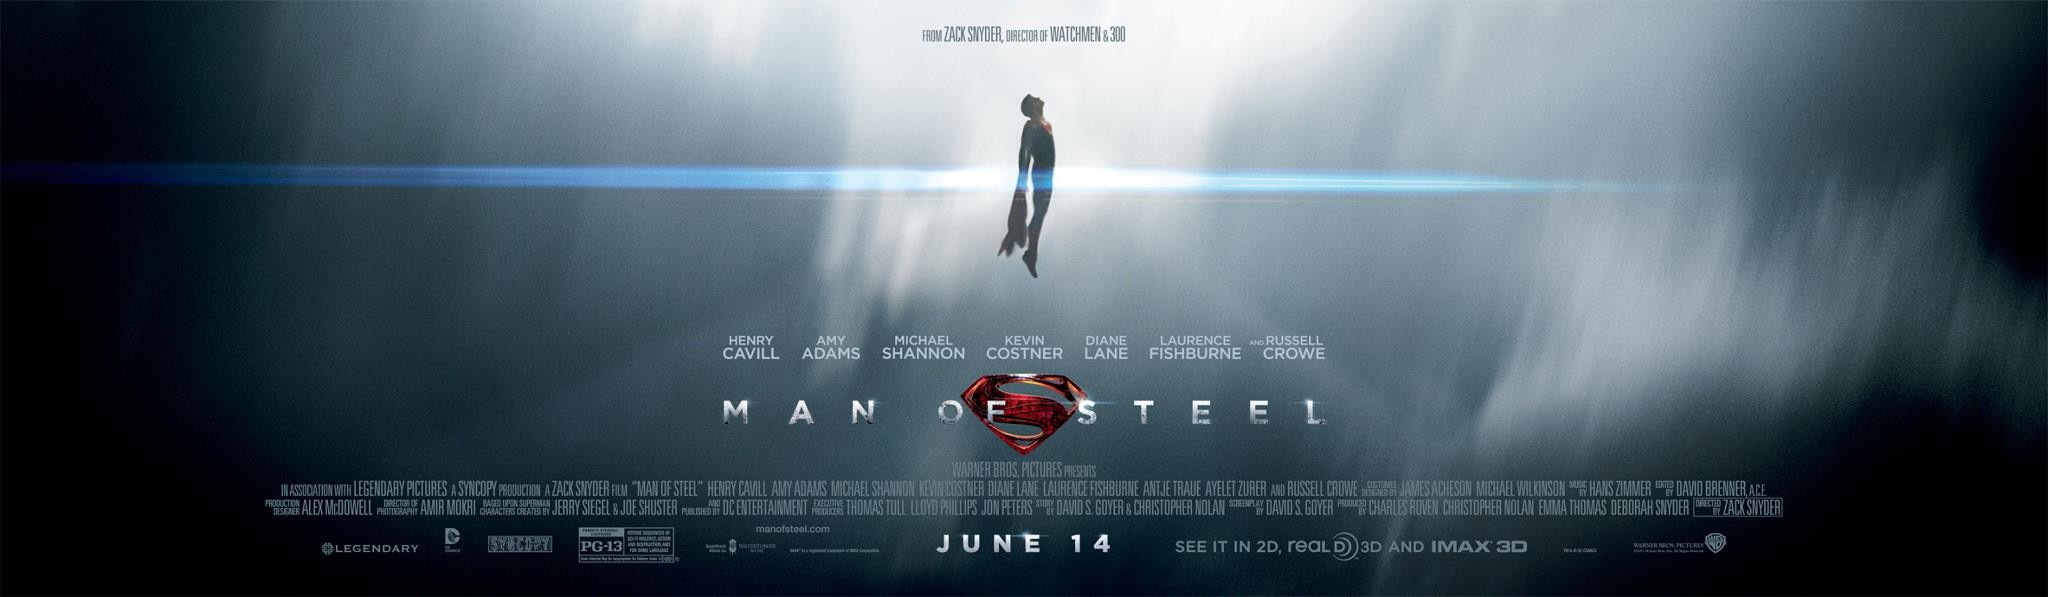 'MAN OF STEEL' Sets New Record for June Openings